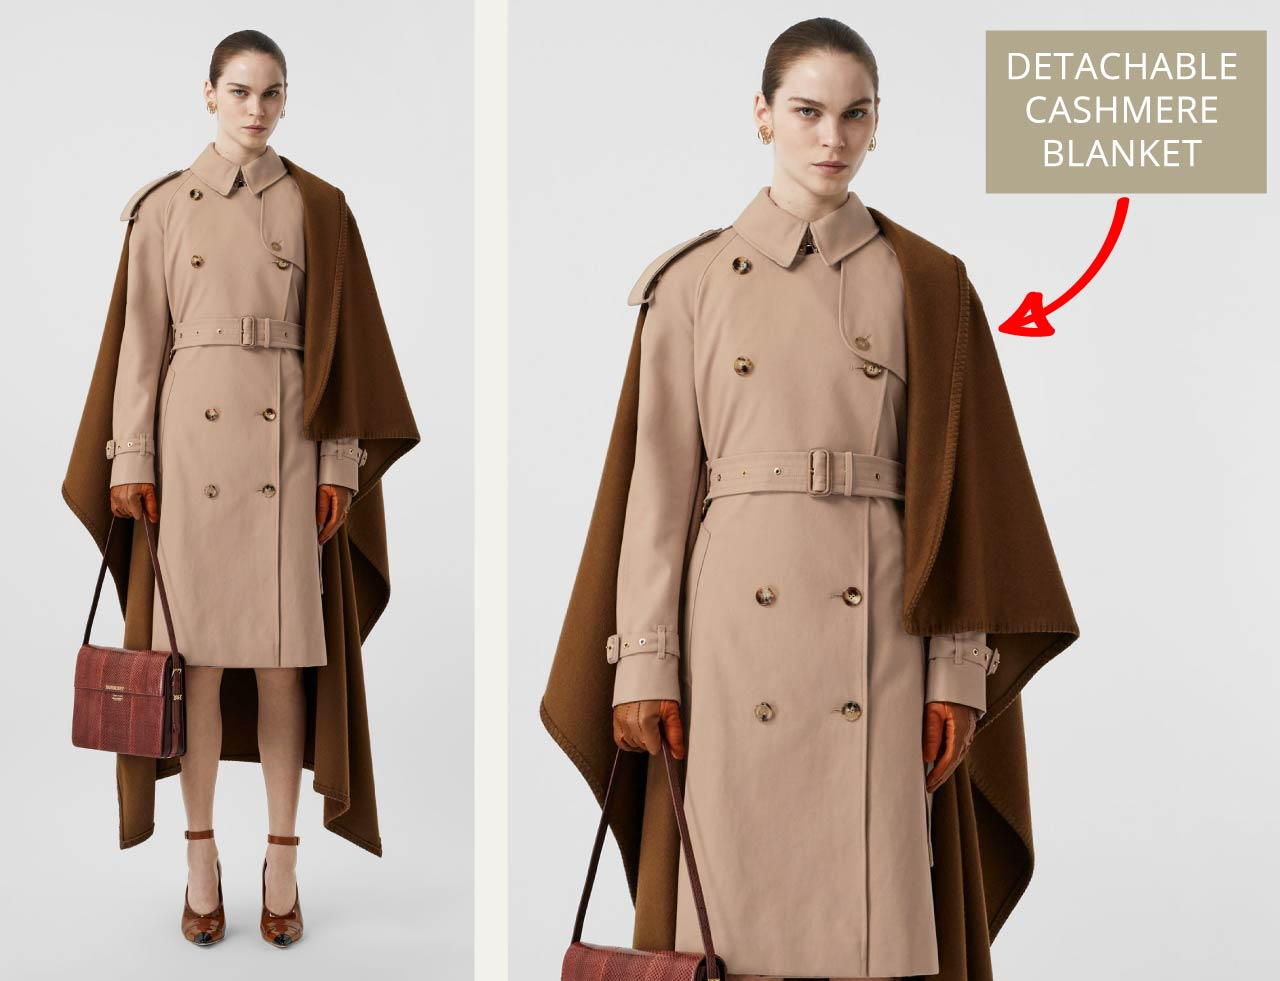 Burberry Trench Coat Details| The Cutting Class. Classic trench coat with detachable cashmere blanket.